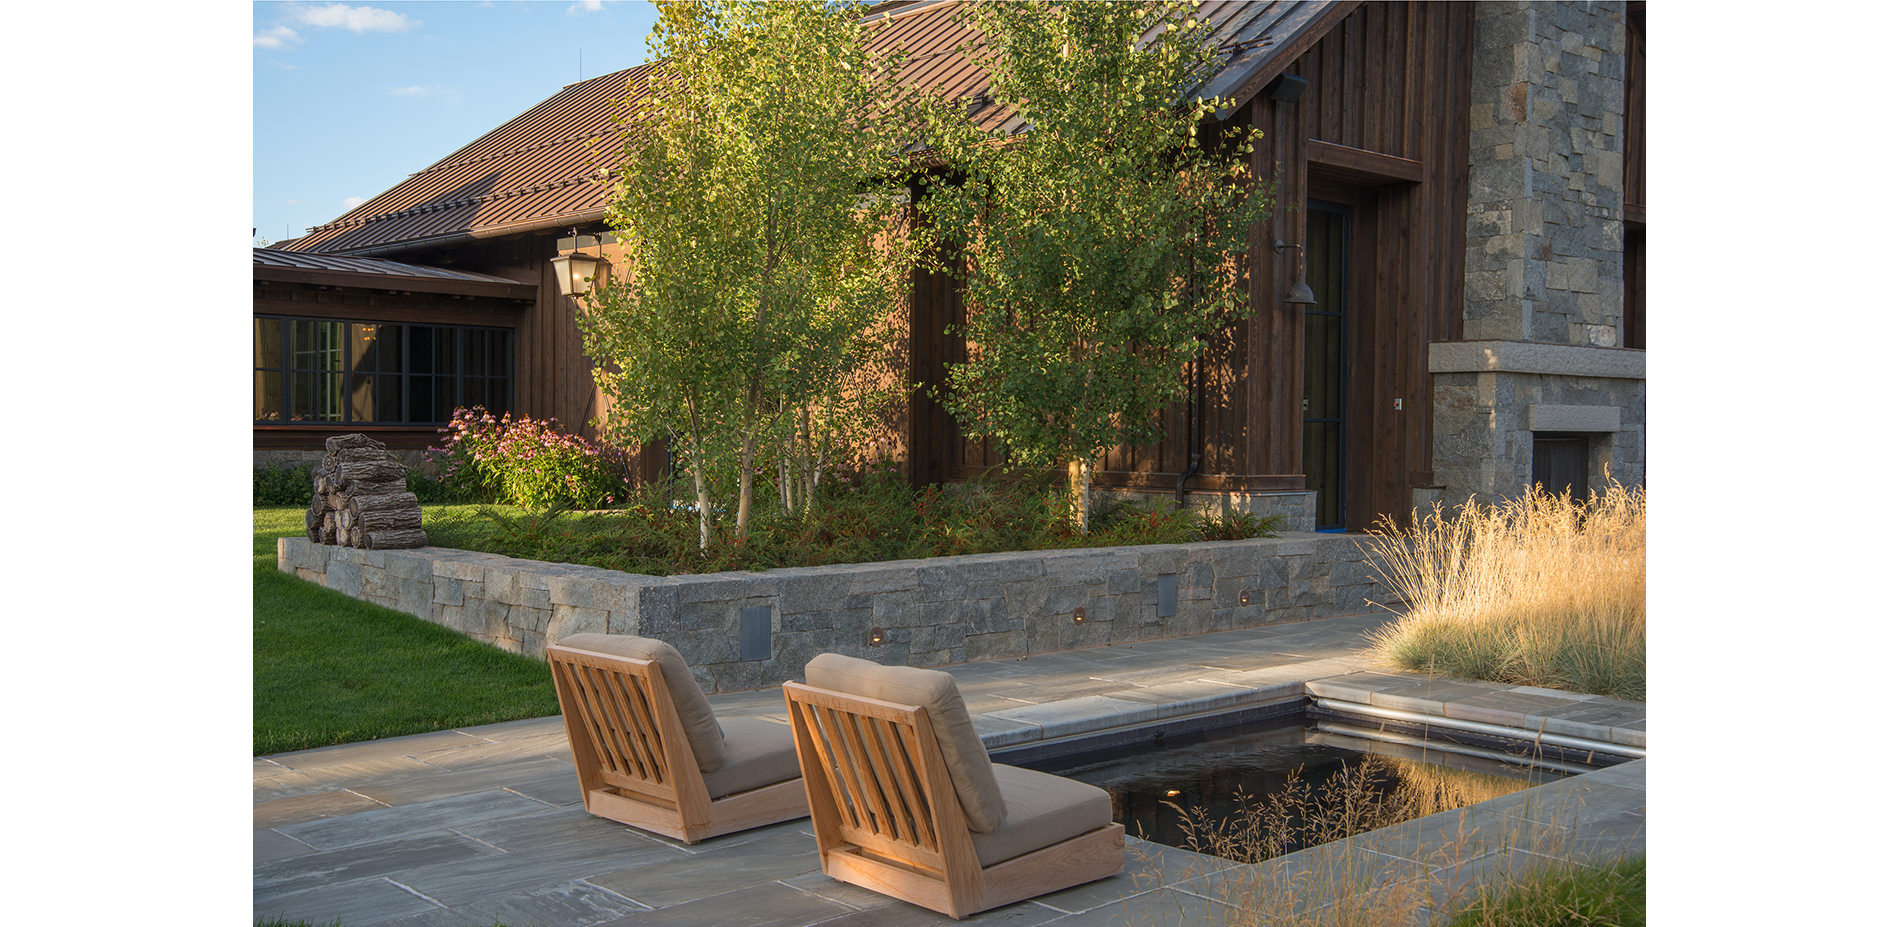 Dbx Ranch A Transformation Brings Forth A New Livable